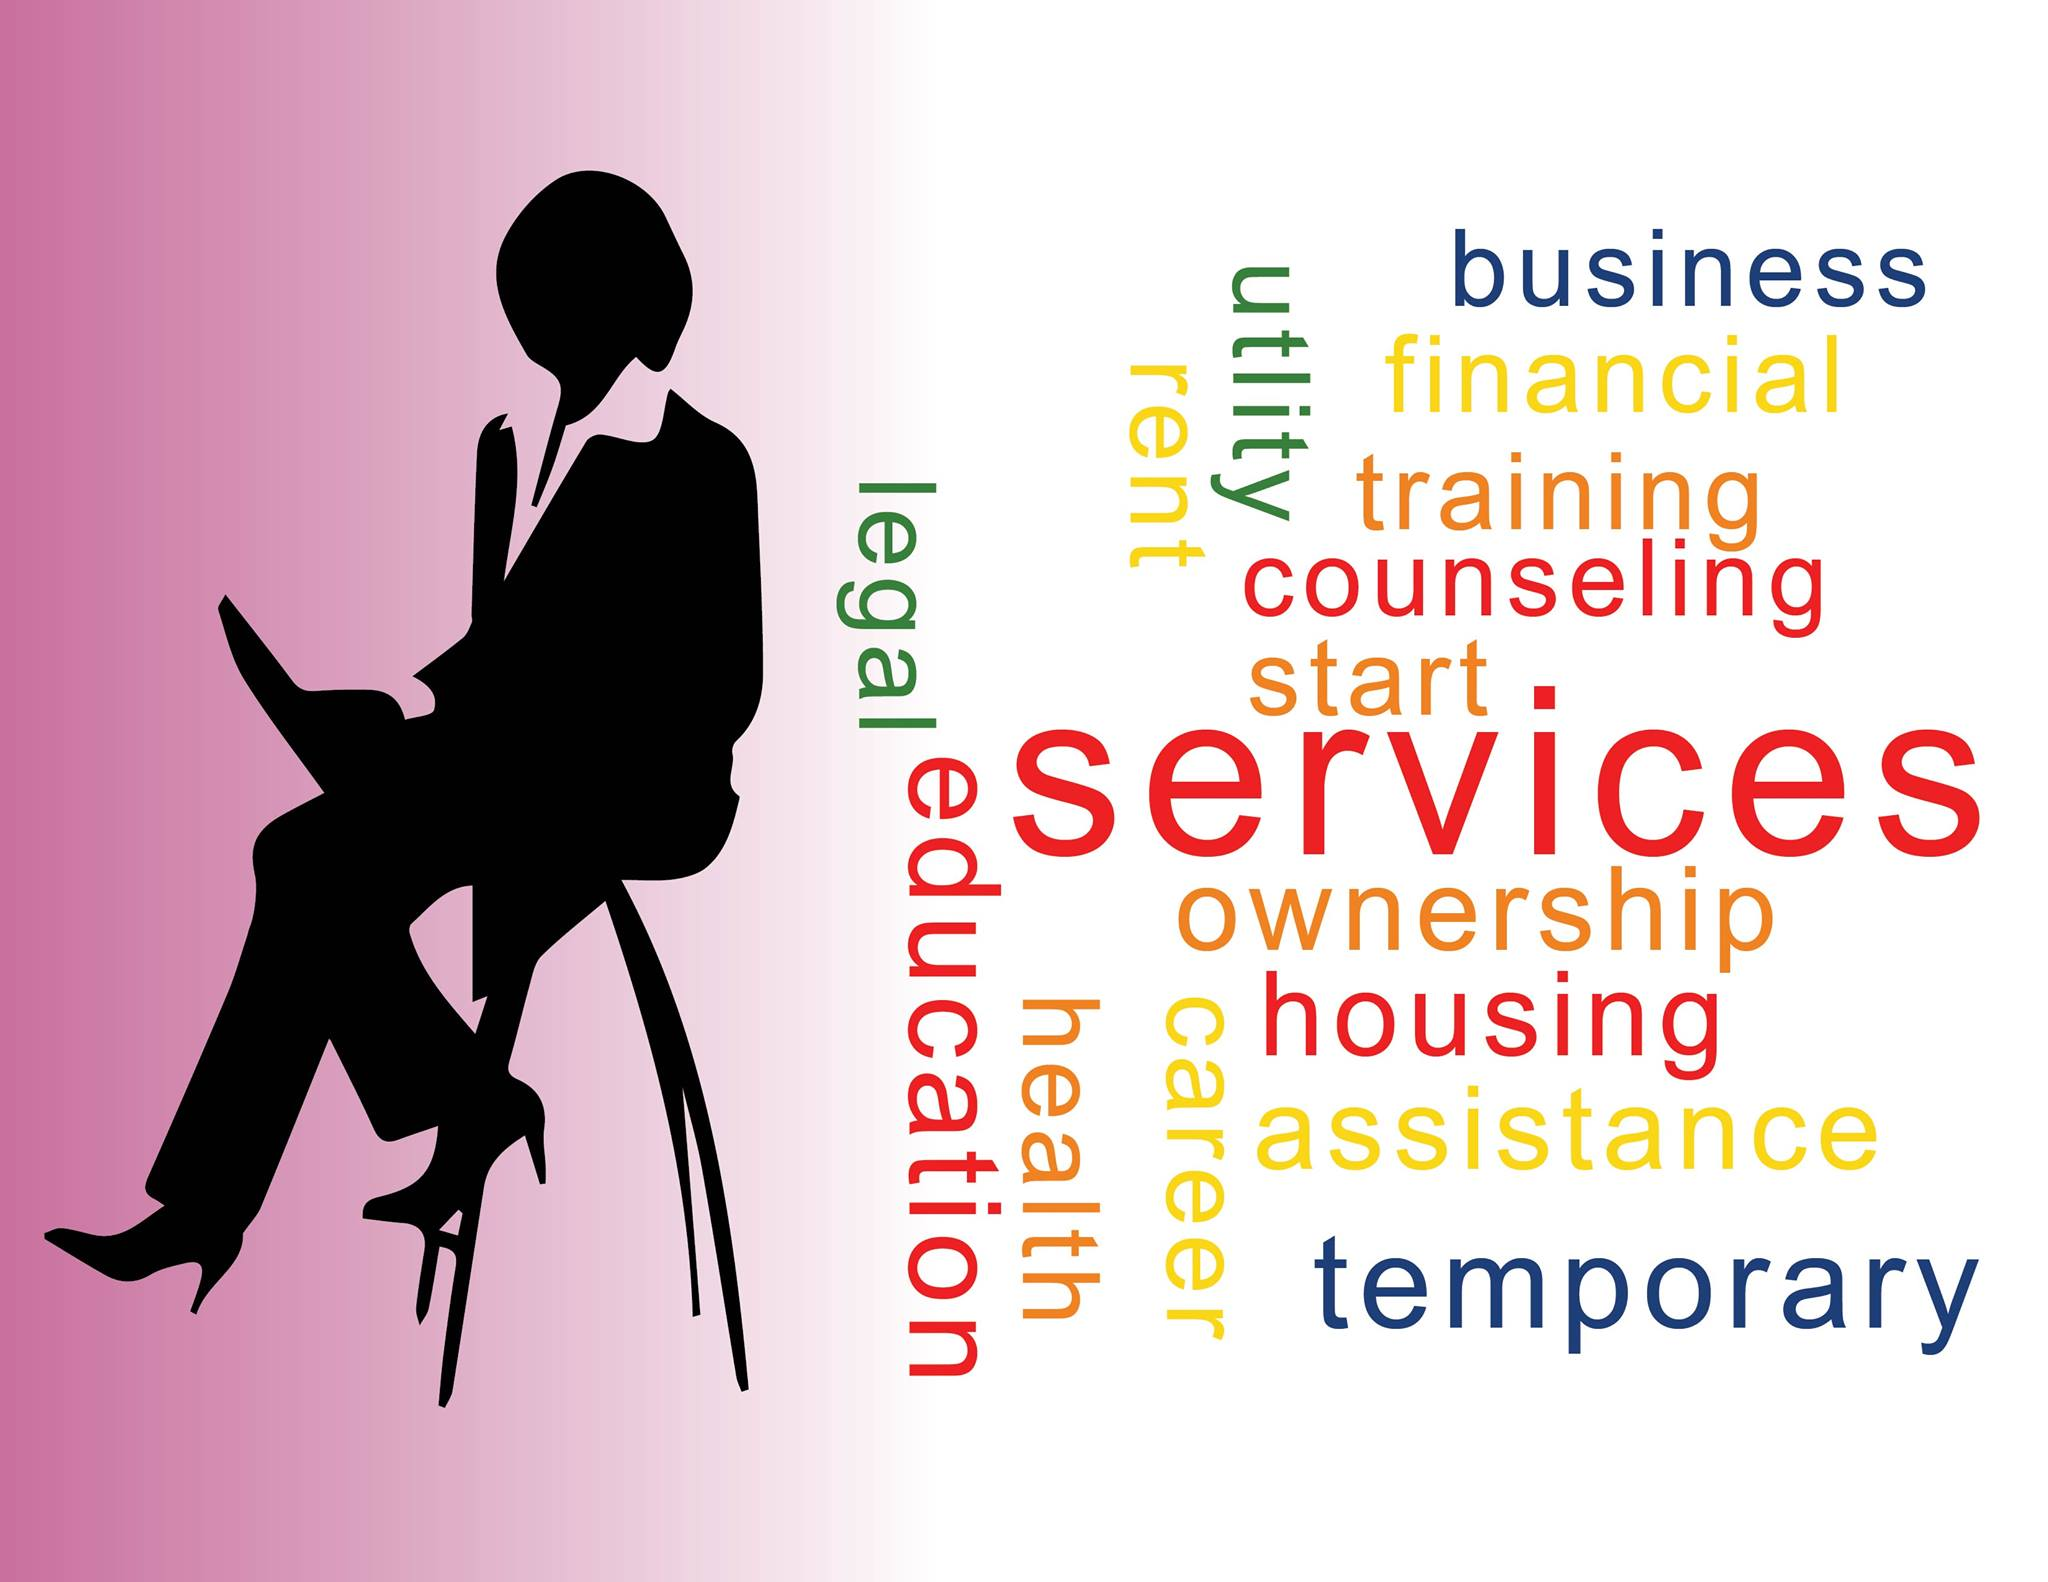 Women's Resources Inc (WRI) - Lilburn GA on Zion Local | 501(c)(3) non-profit organization that provides programs, personal development, resources, and support for women in need.